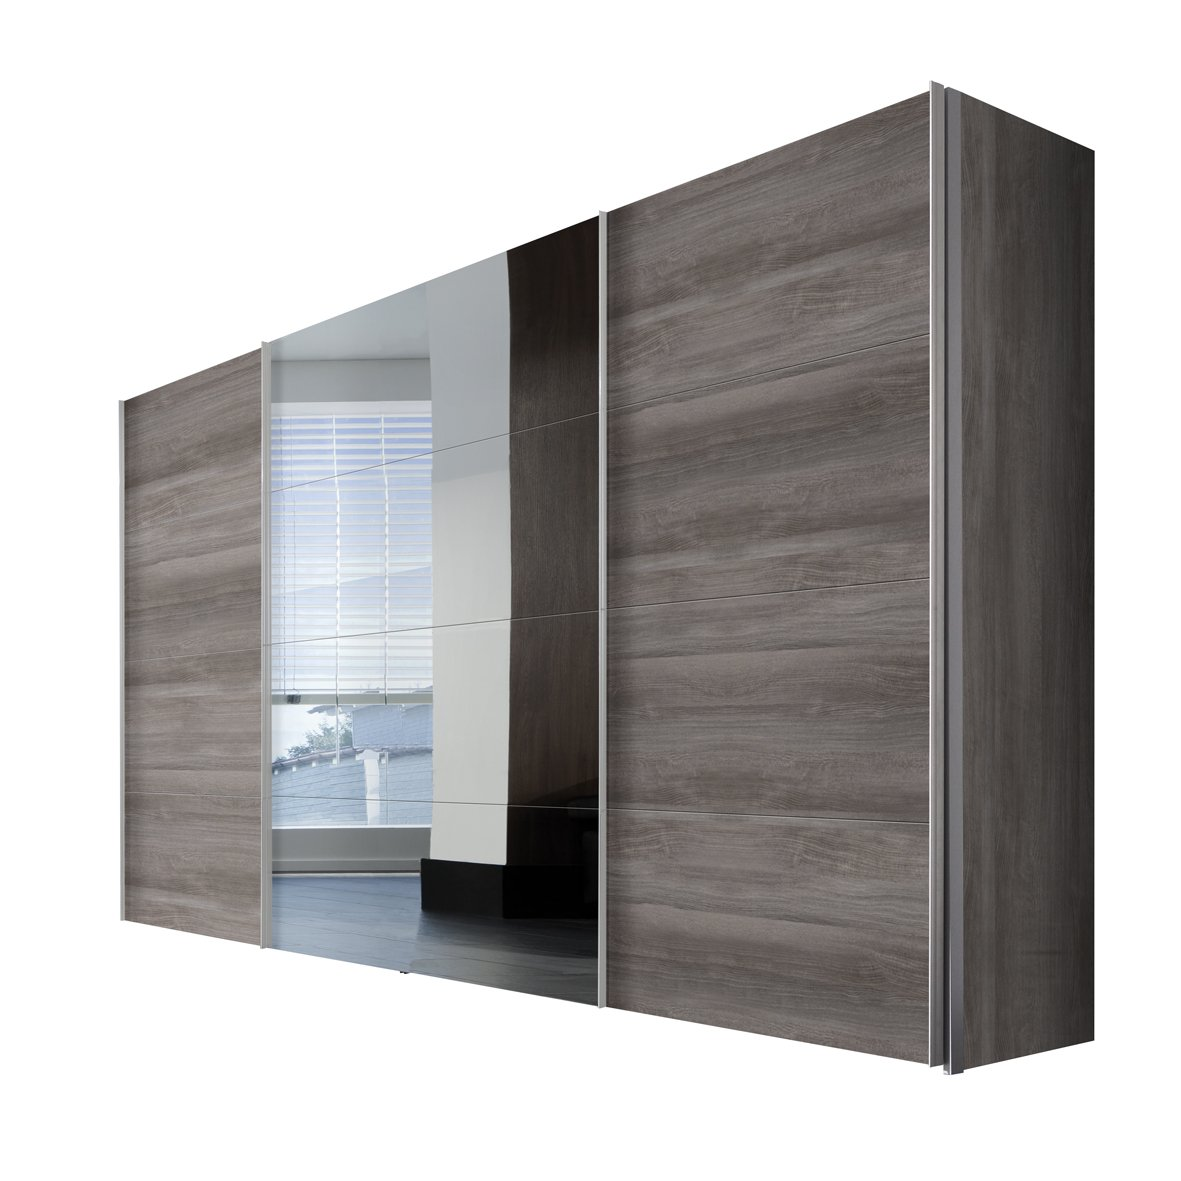 solutions 49850 635 schwebet renschrank 3 t rig korpus und front silber eiche spiegel. Black Bedroom Furniture Sets. Home Design Ideas